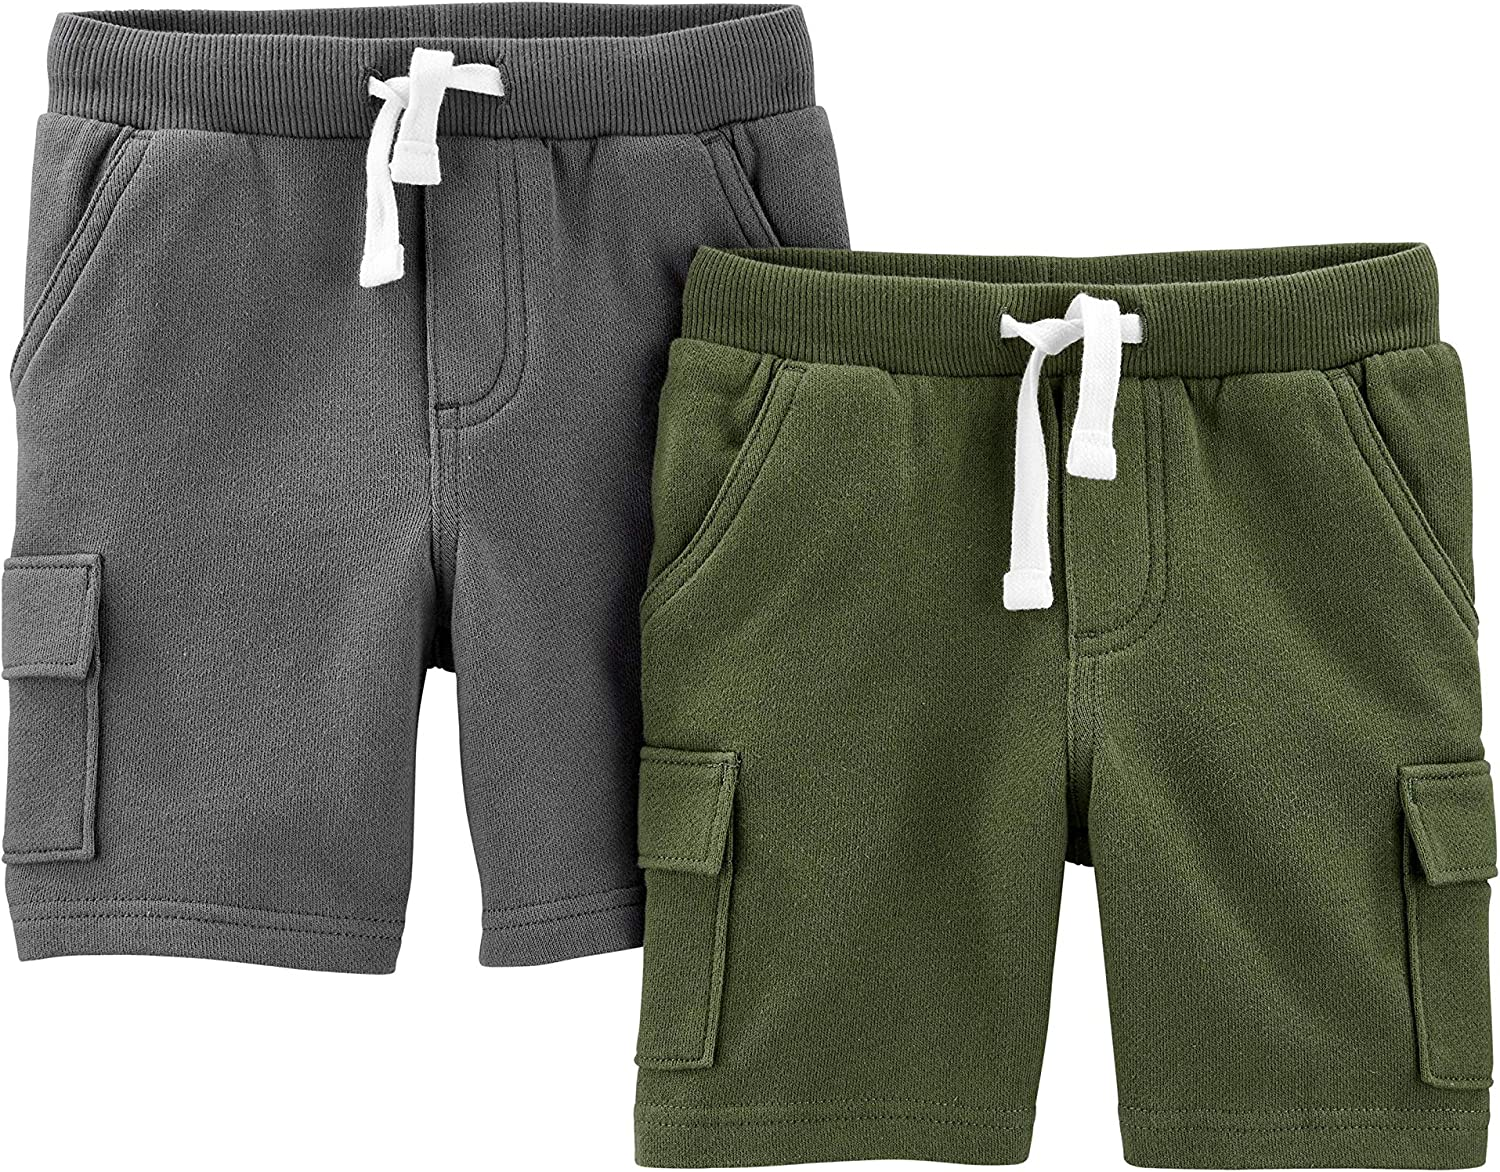 Simple Joys by Carters Boys Multi-Pack Knit Shorts Cargo Shorts